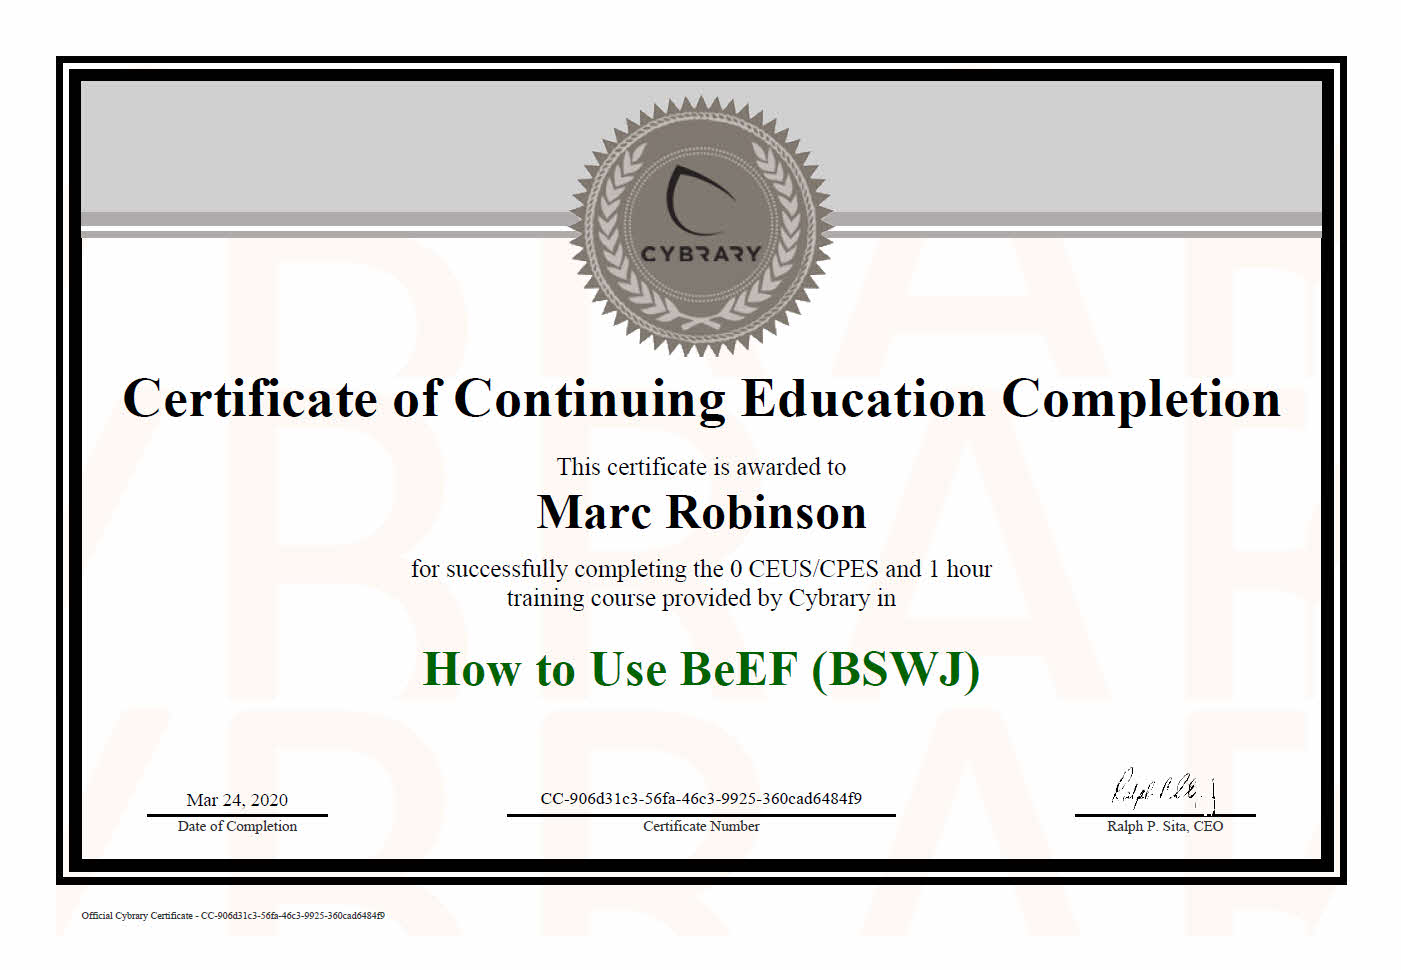 Continuing Education Course Certificate in BeEF Framework for Marc Robinson